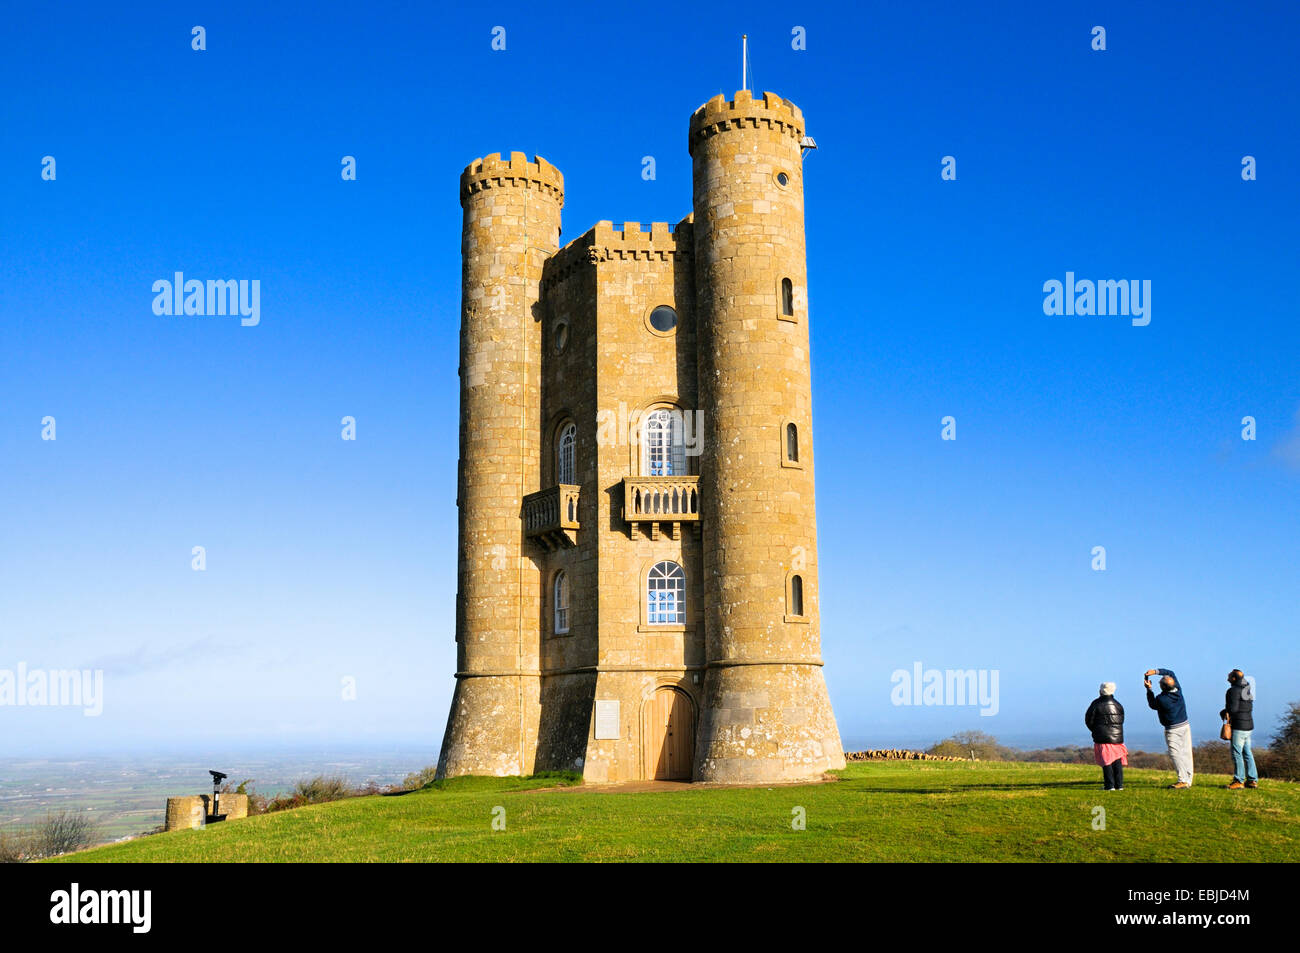 Broadway Tower, Cotswolds, Worcestershire, England, UK Stock Photo